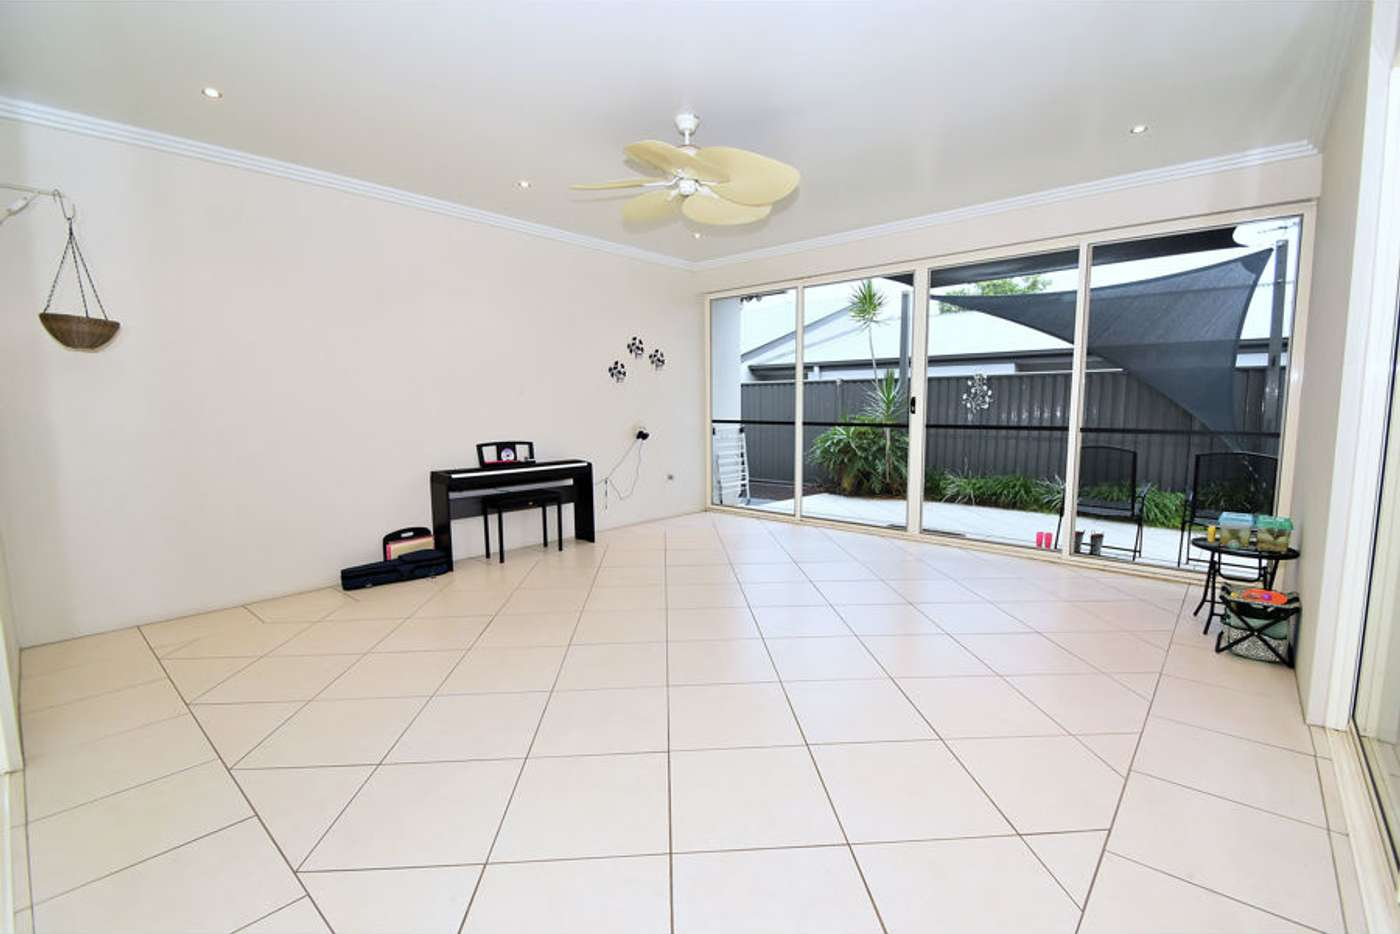 Sixth view of Homely house listing, 15 Bowers street, Eight Mile Plains QLD 4113